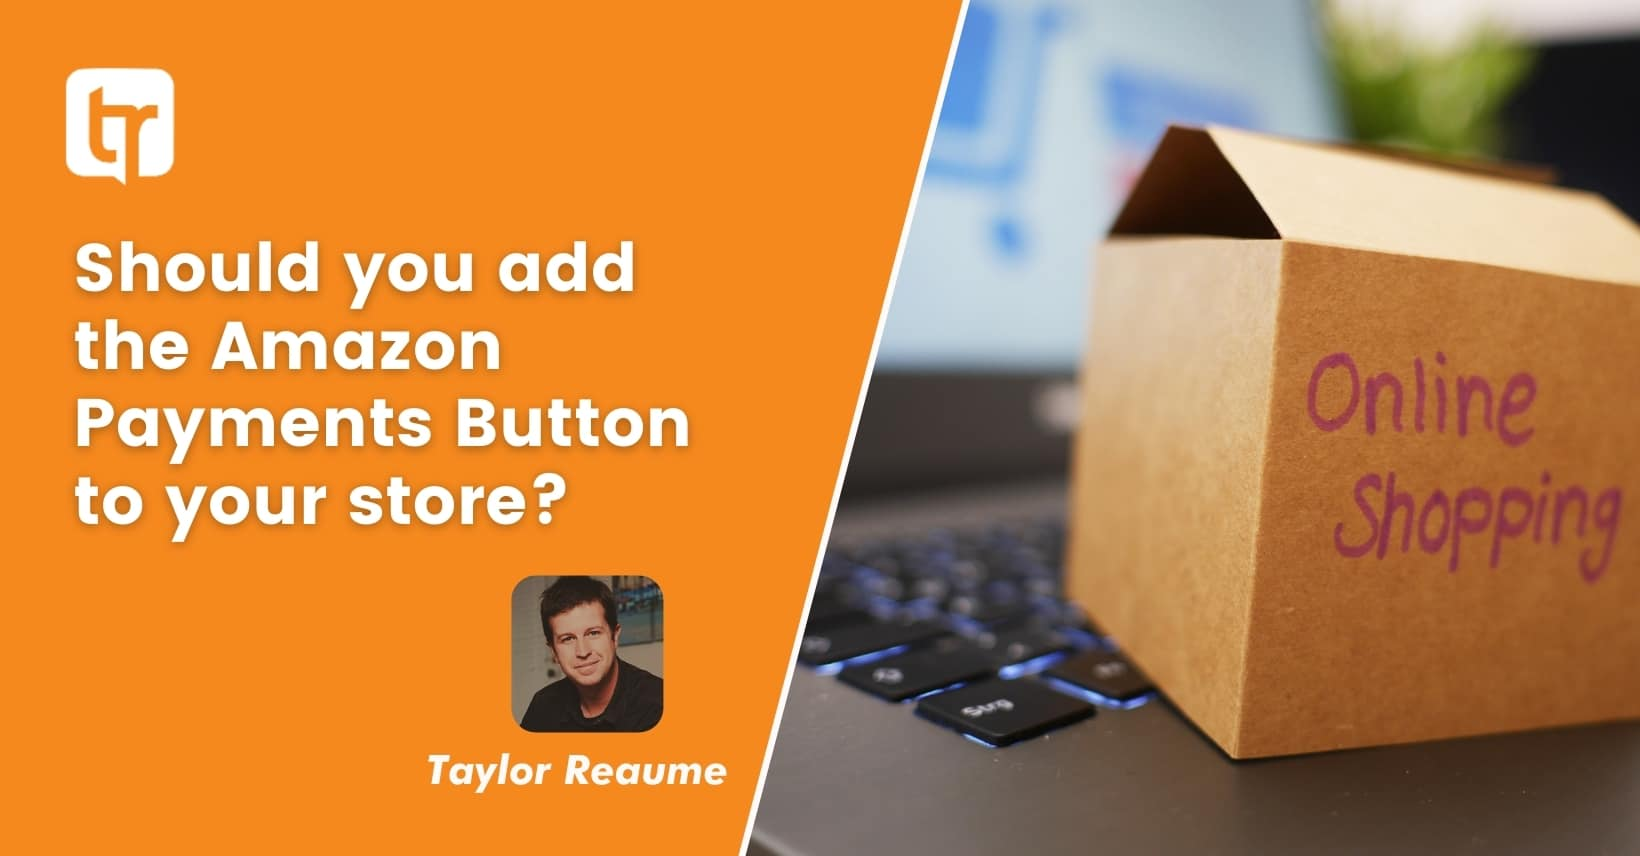 Should you add the Amazon Payments Button to your store?